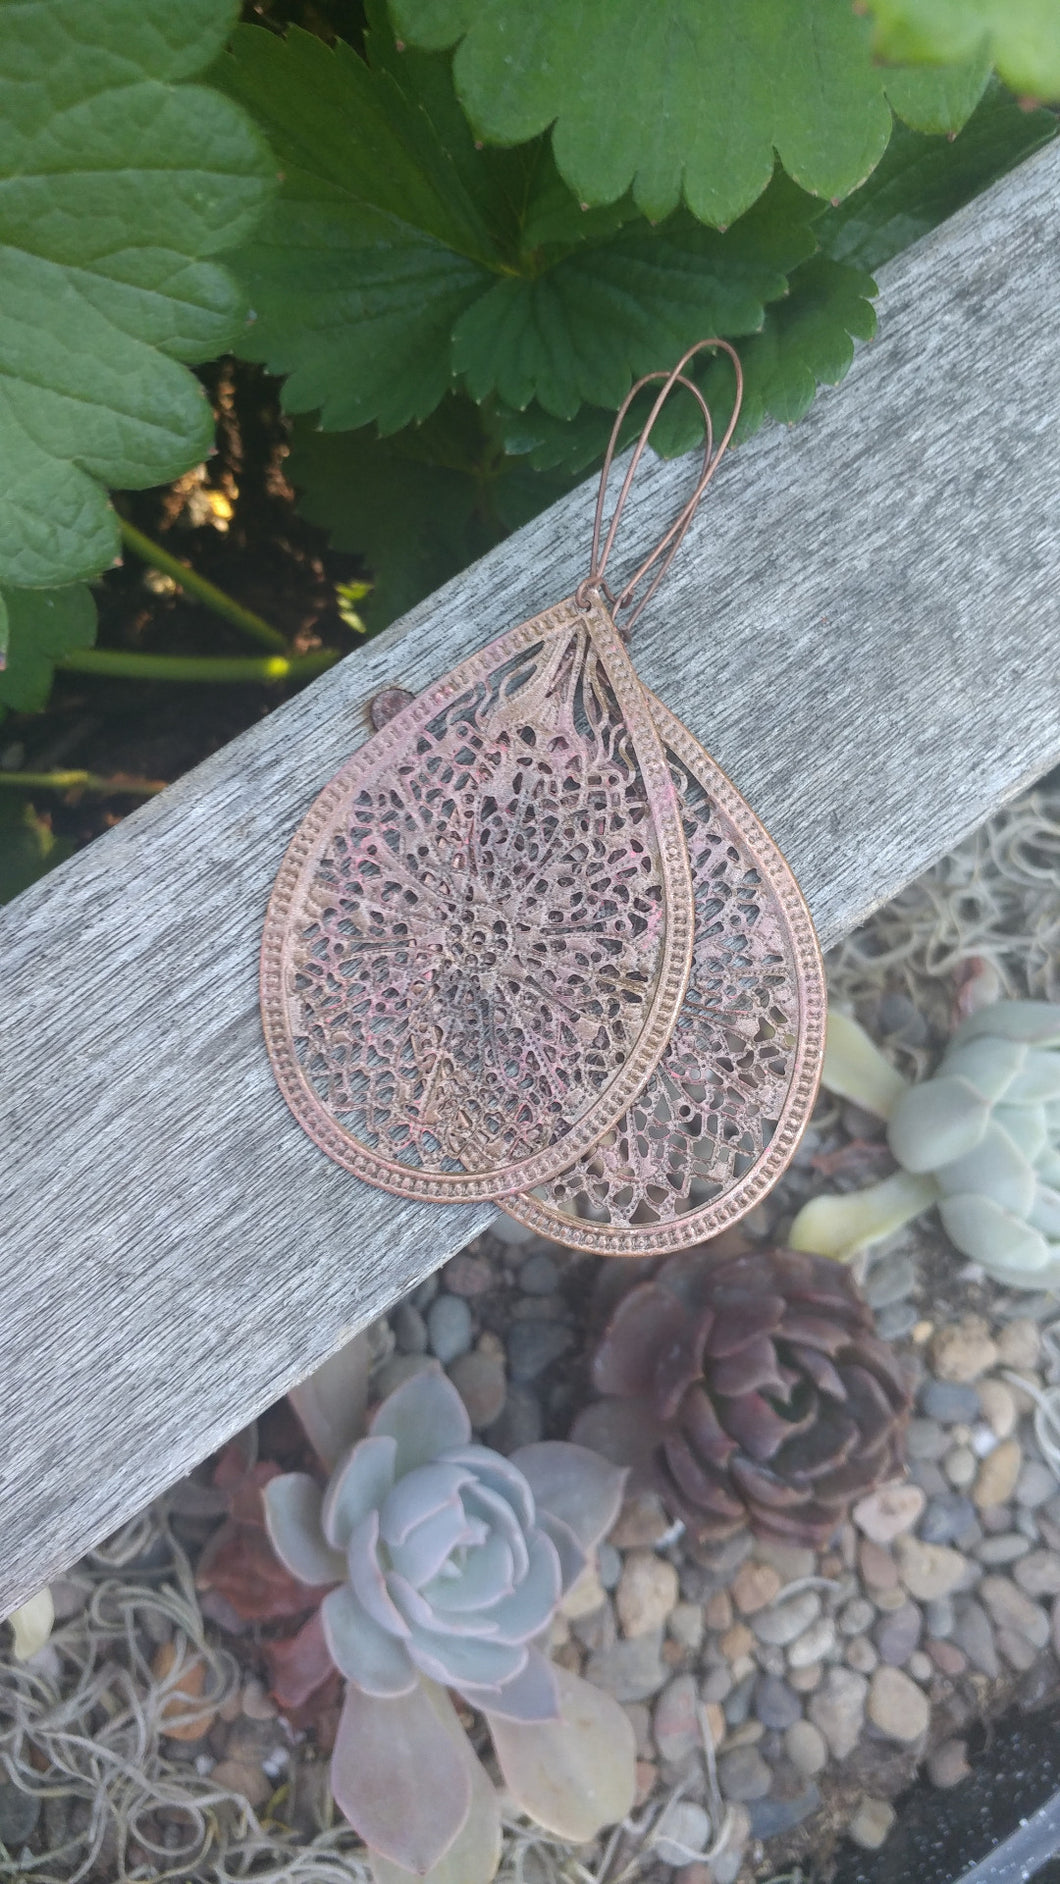 Oregon Raindrop Bronze With Peach Patina Lightweight Filigree Earrings by MyBella